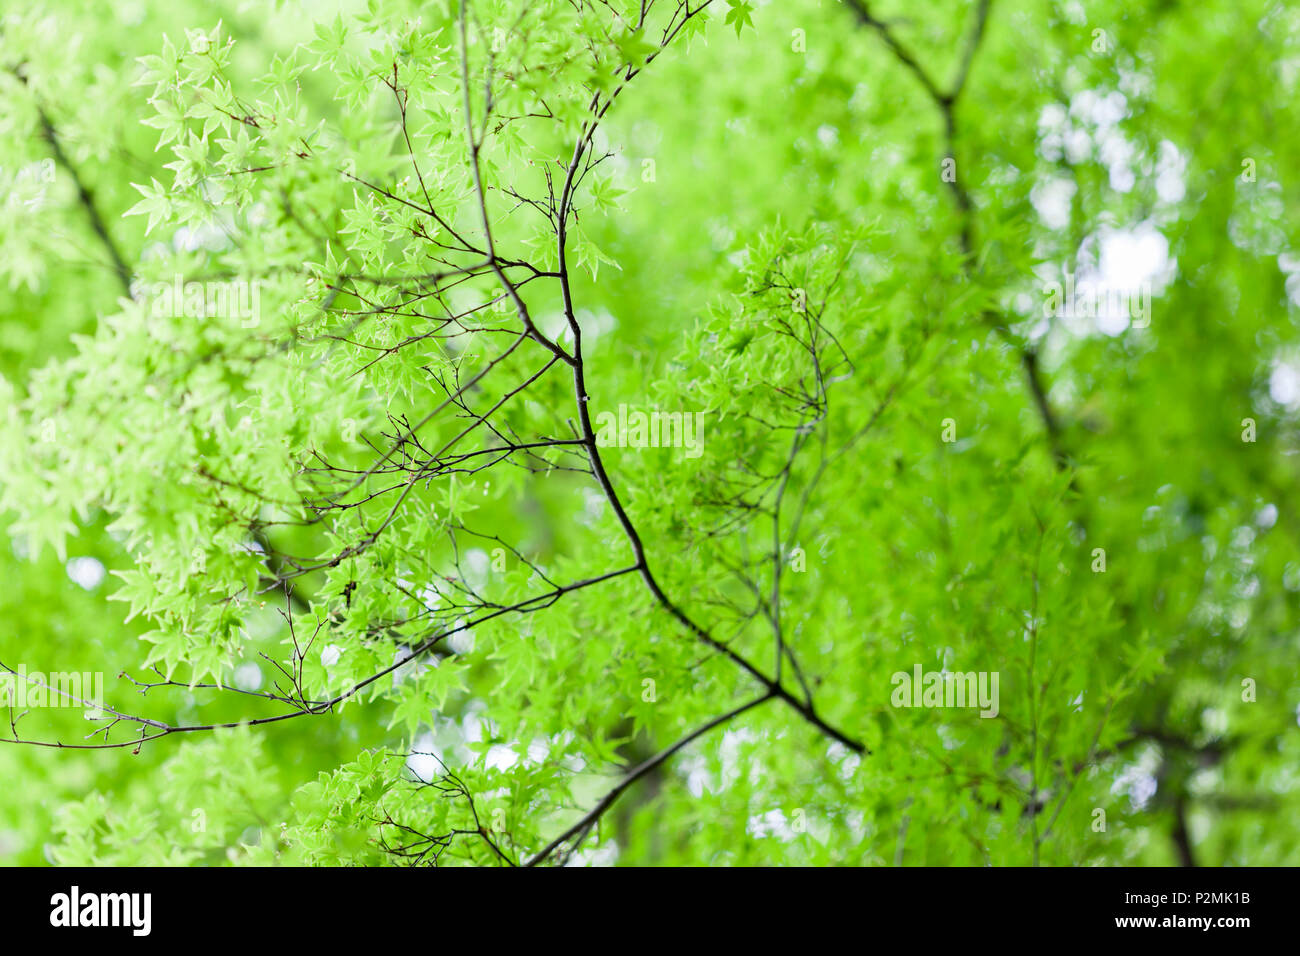 Bright green leaves on a Japanese Maple Tree. - Stock Image